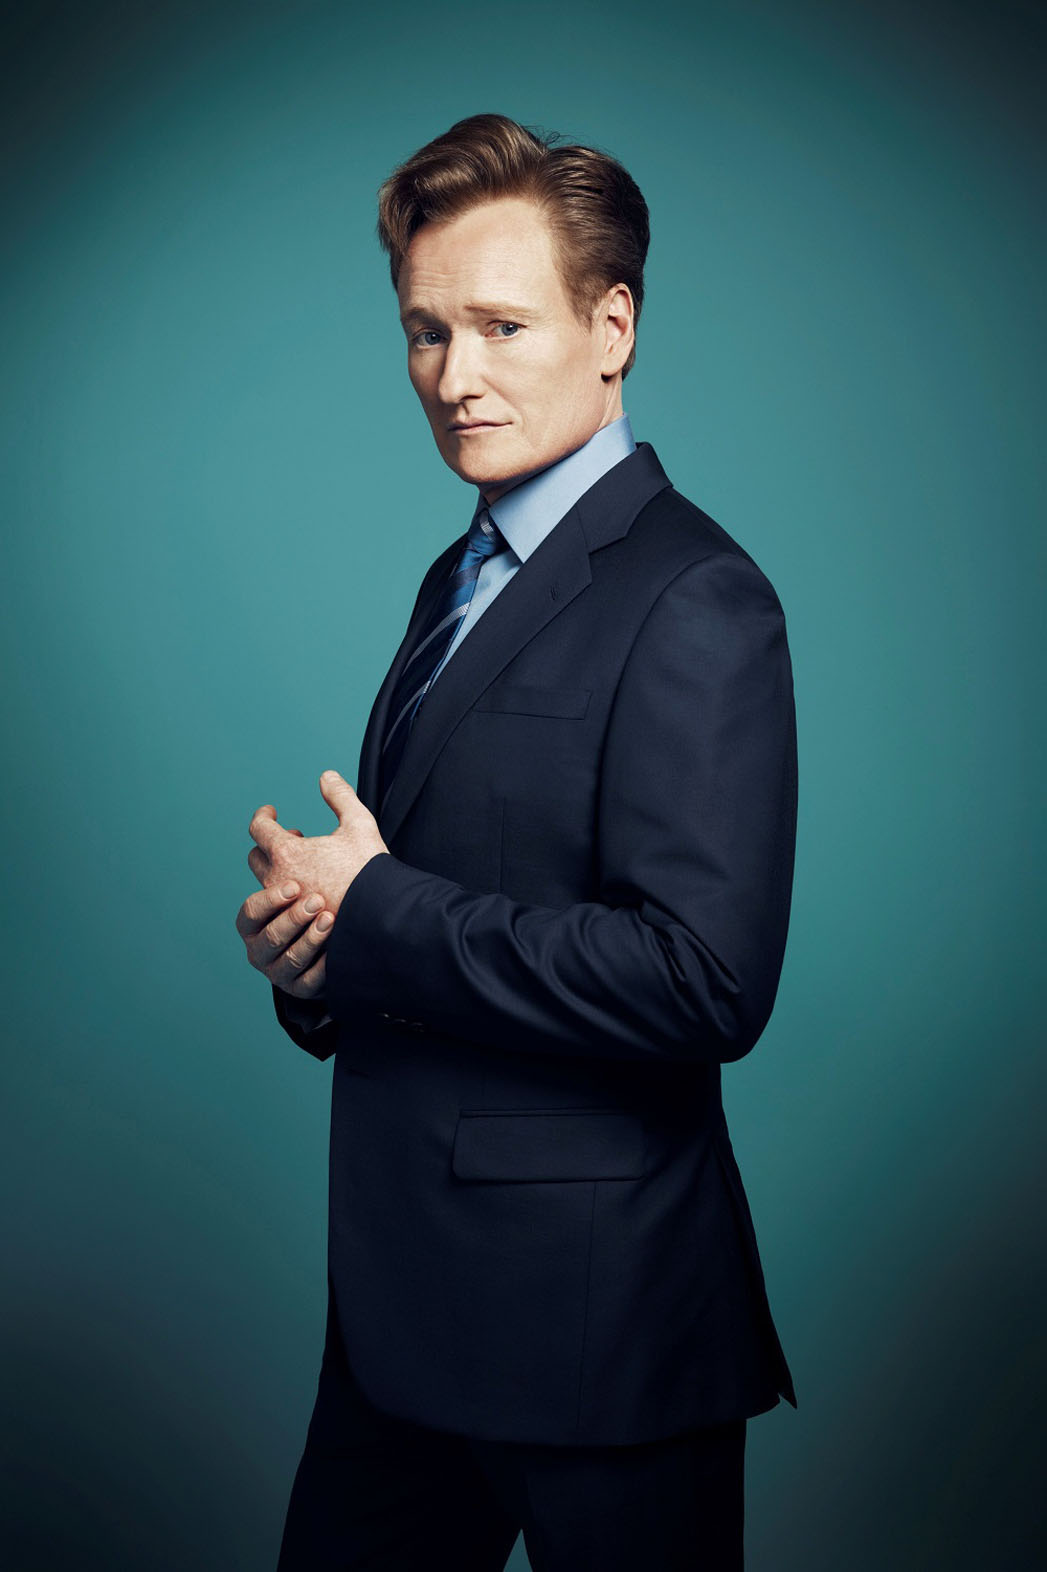 Conan O'Brien Portrait - P 2014